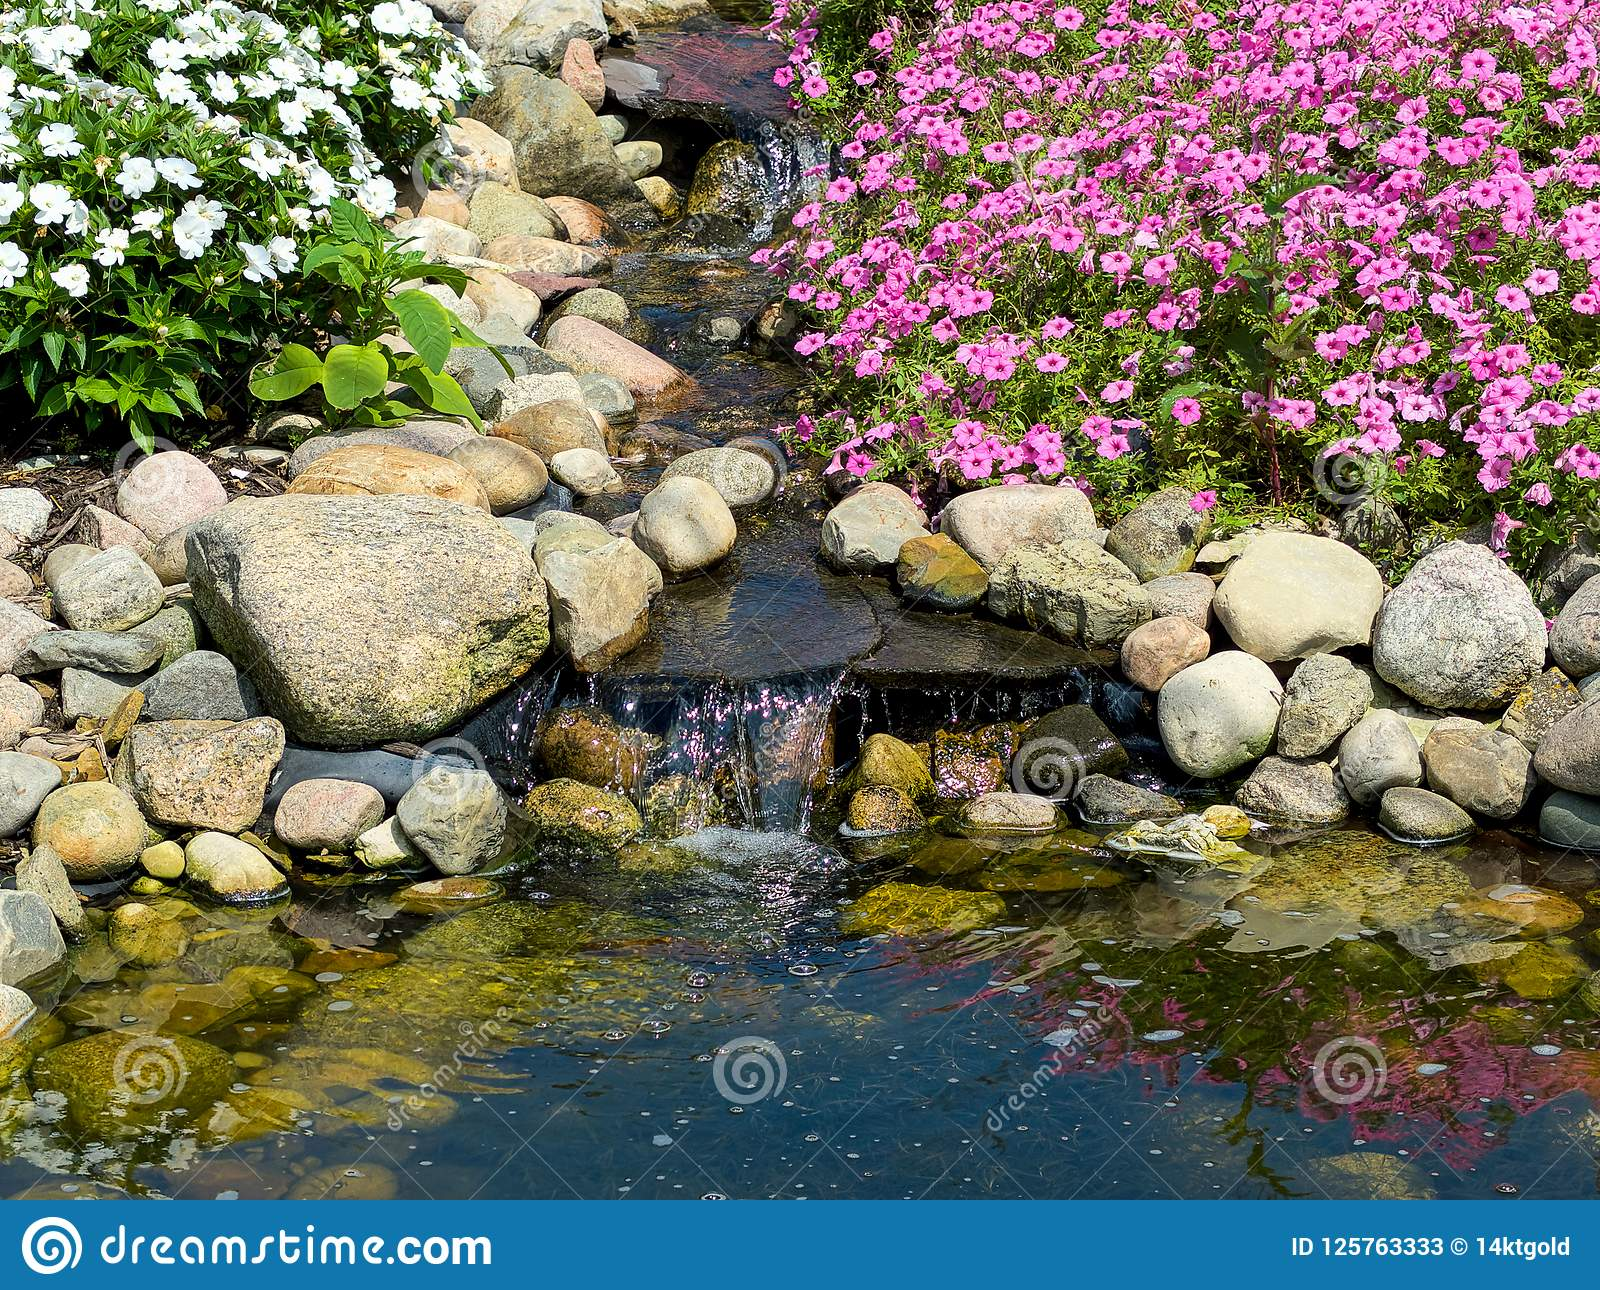 Download Waterfall In Rock Garden With Pond Stock Image   Image Of  Landscape, Garden: